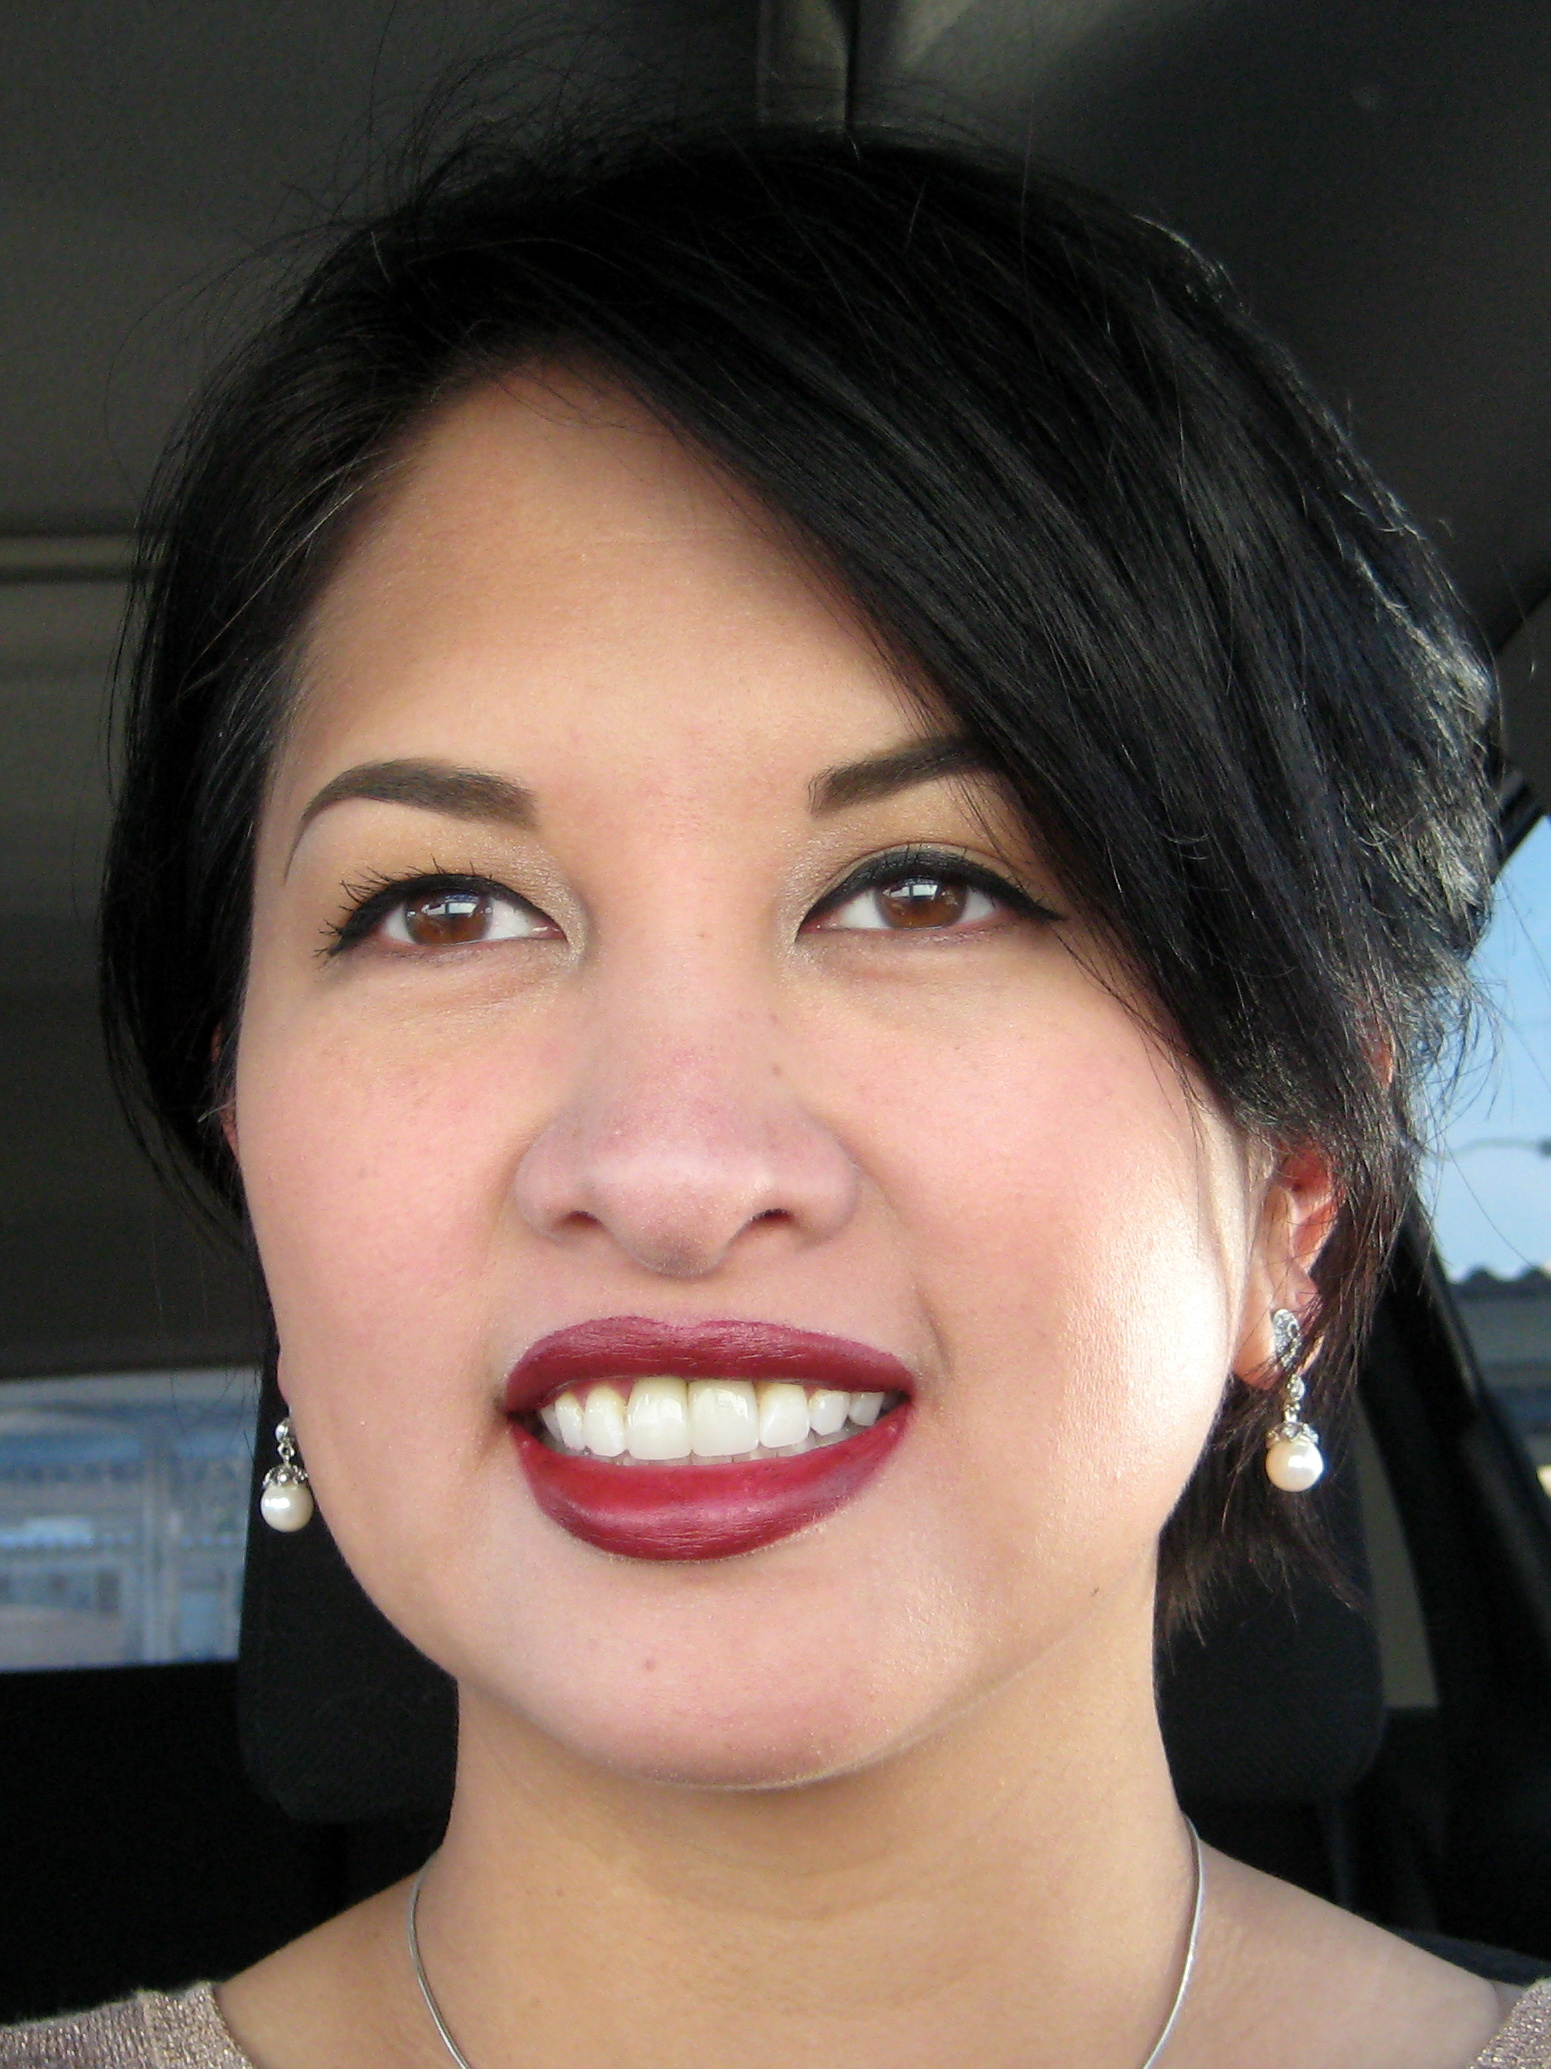 Jenn wearing holiday makeup look, vamp lipstick